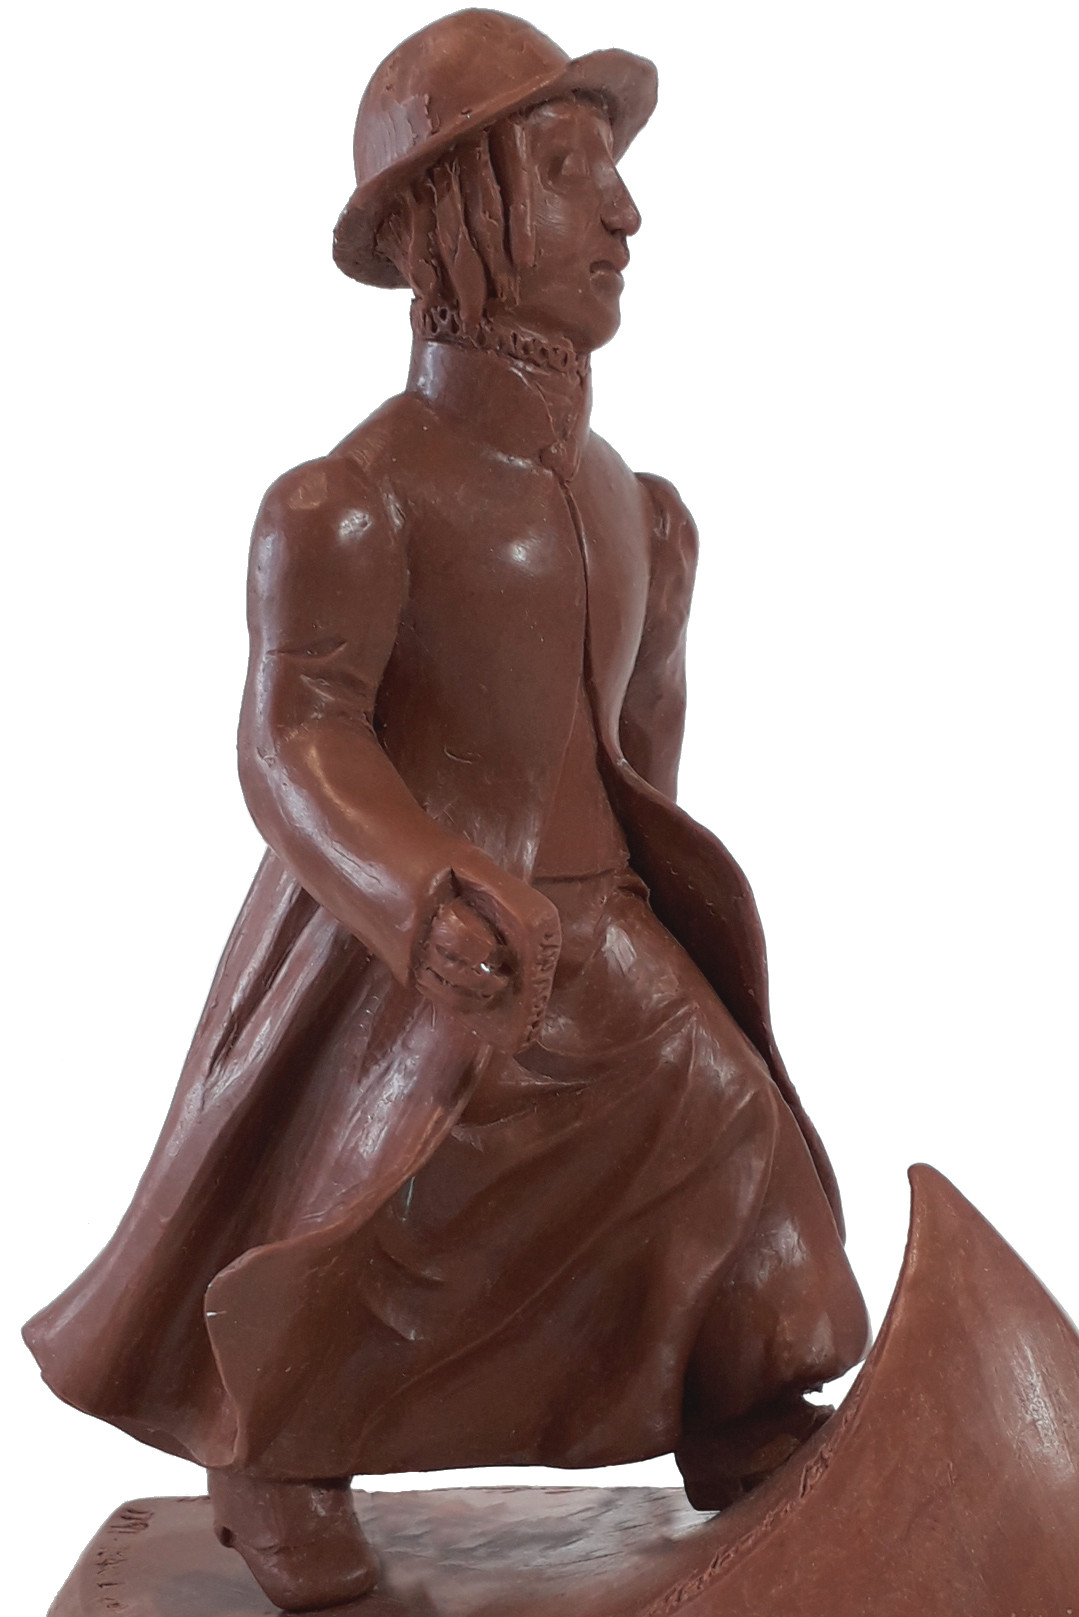 A Public Statue of Anne Lister in Foundry Bronze UK by Ama Menec